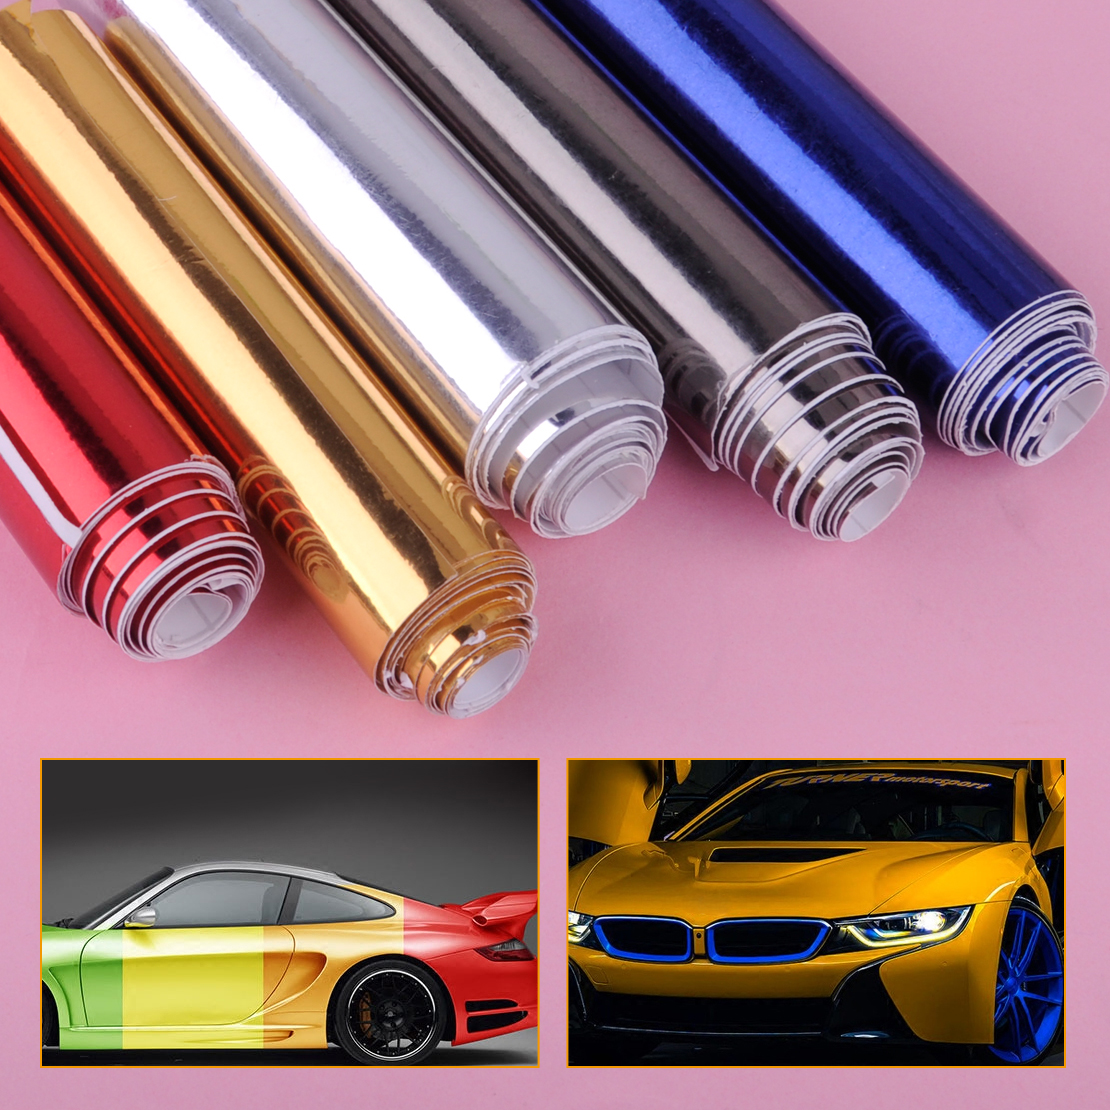 DWCX Car Styling 150cmx15cm Auto Glossy Chrome Mirror Vinyl Wrap Film Roll Sheet Sticker Fit for VW Audi BMW Honda Hyundai Ford car floor mats covers free shipping 5d for toyota honda for nissan hyundai buick for ford audi benz for bmw car etc styling